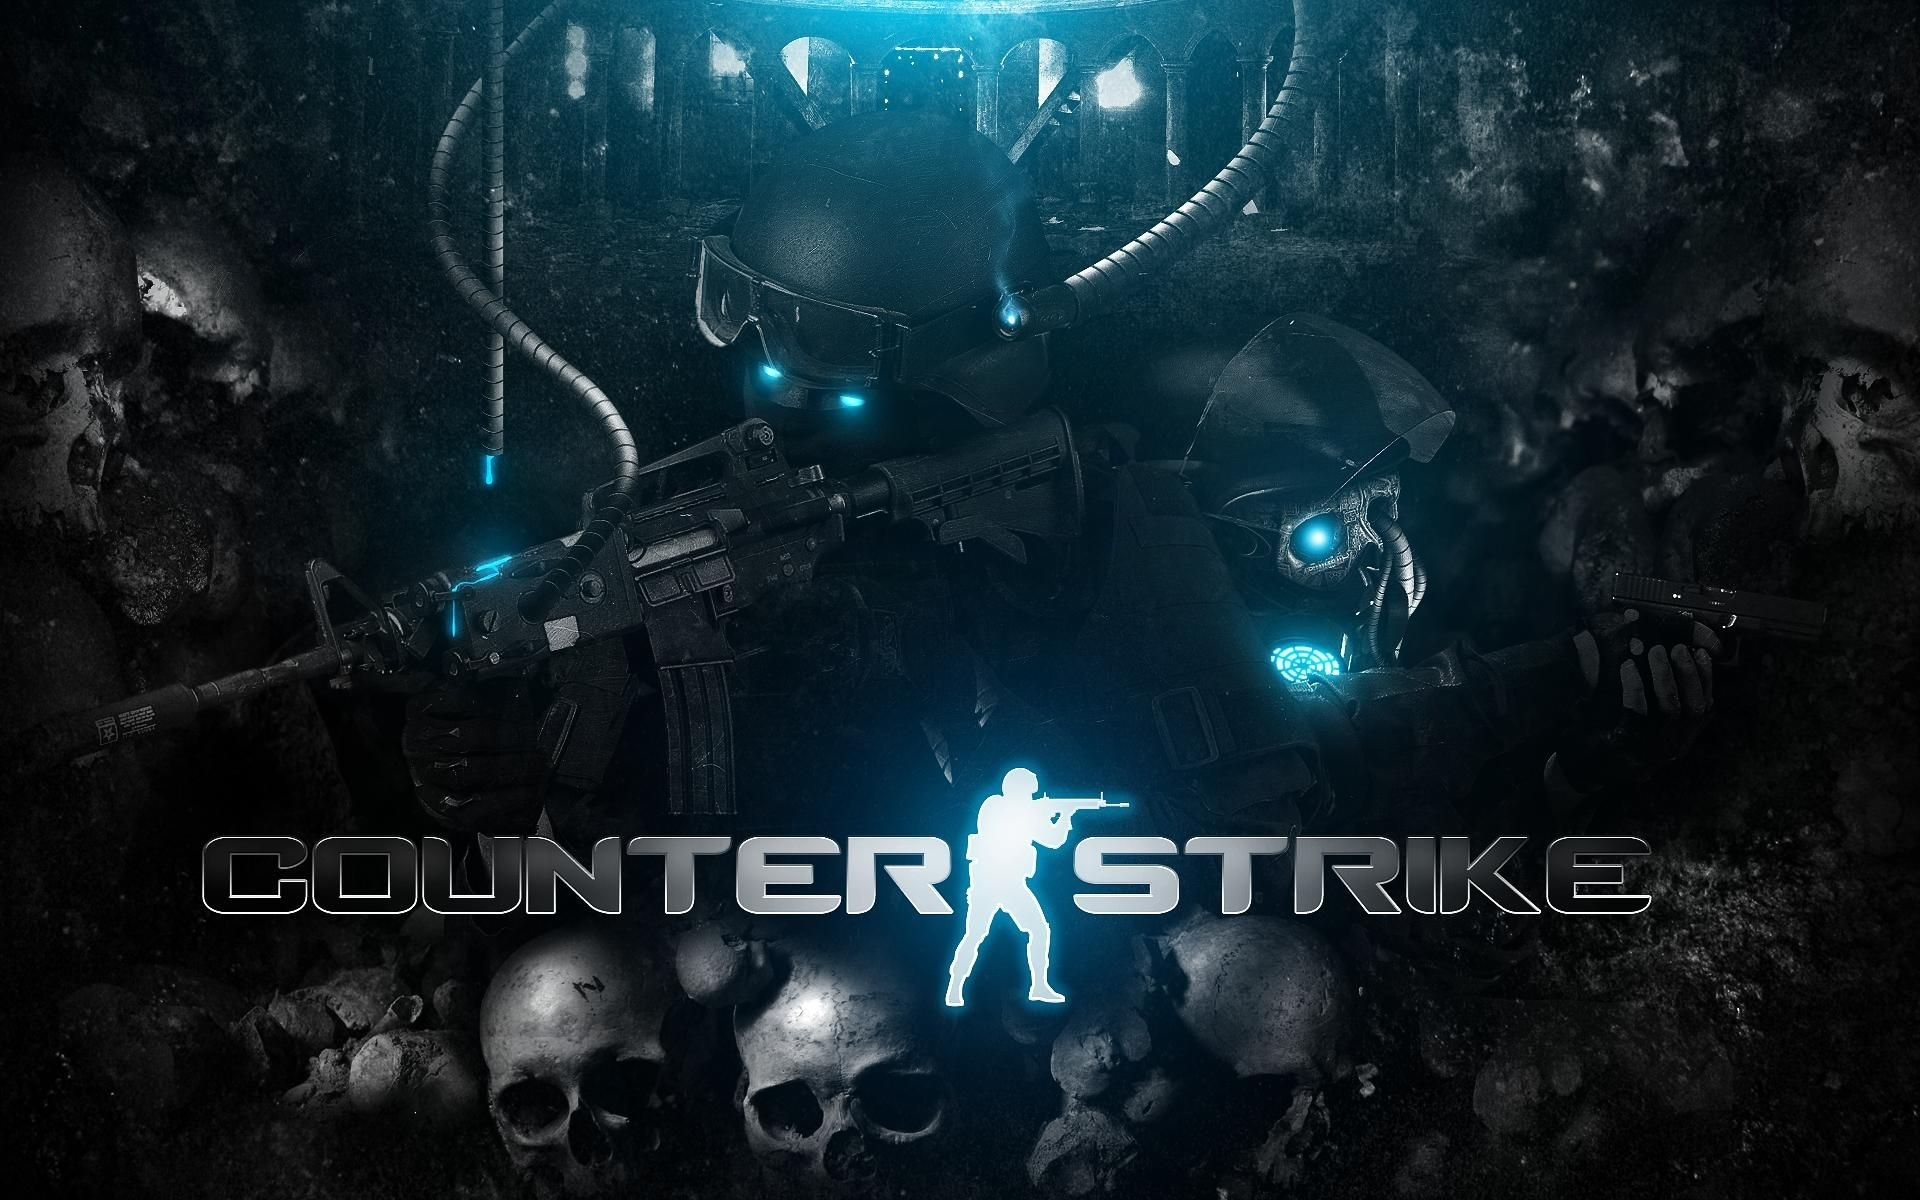 counter strike wallpapers - wallpaper cave | free wallpapers